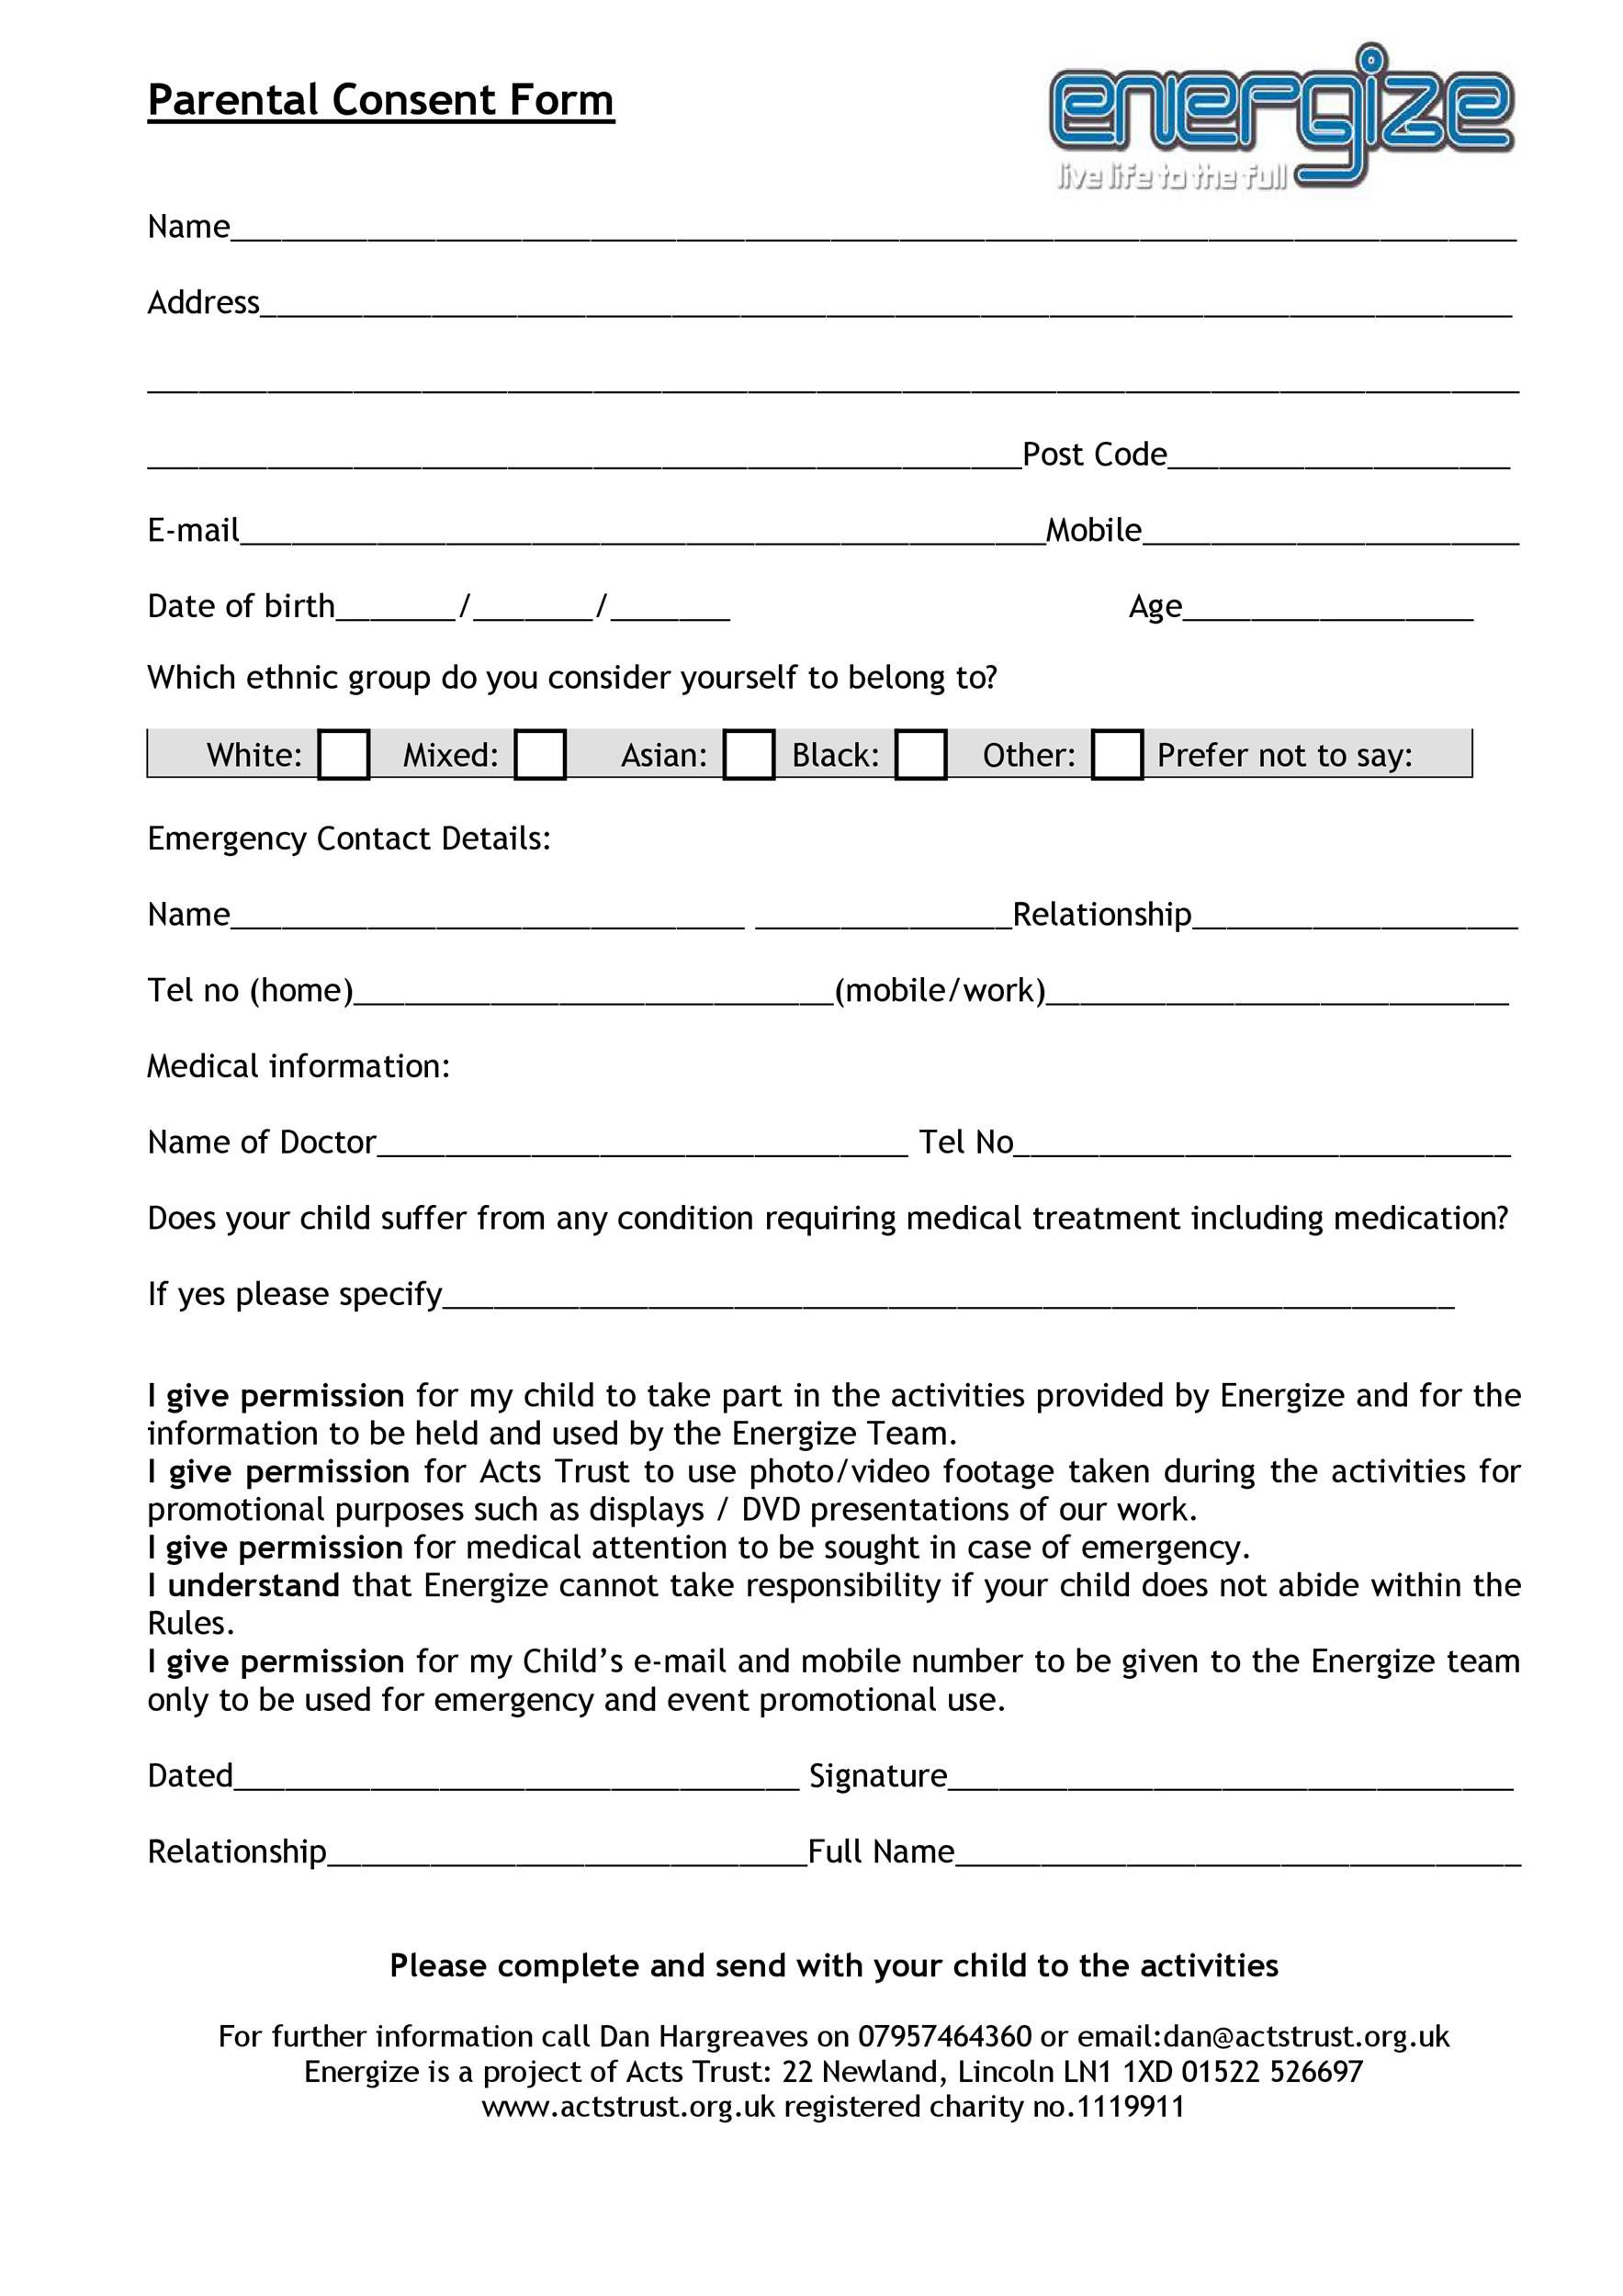 007 Archaicawful Free Printable Medical Consent Form Template Image Full